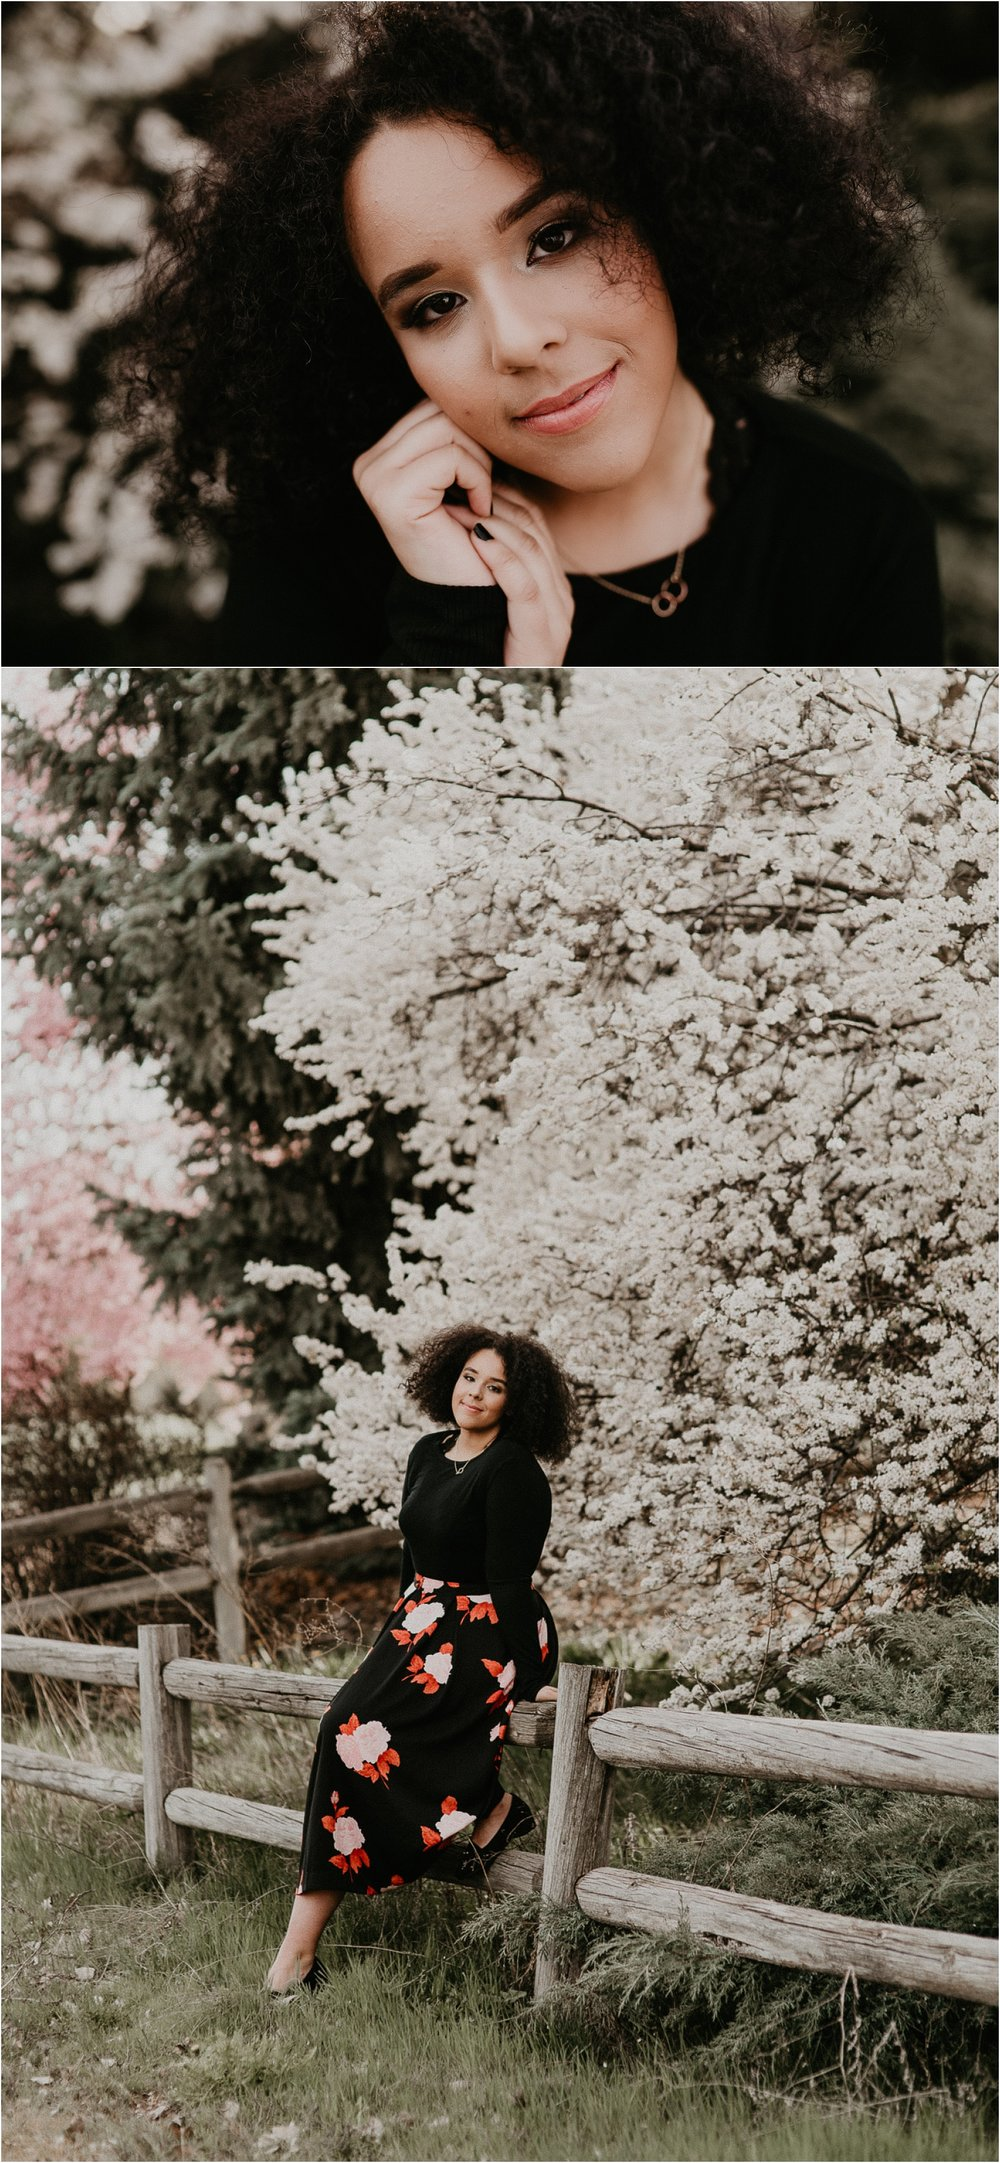 Boise Senior Photographer Makayla Madden Photography Spring Senior Pictures Class of 2018 Cherry Blossoms Idaho Location Spring Senior Outfit Meridian Photographer